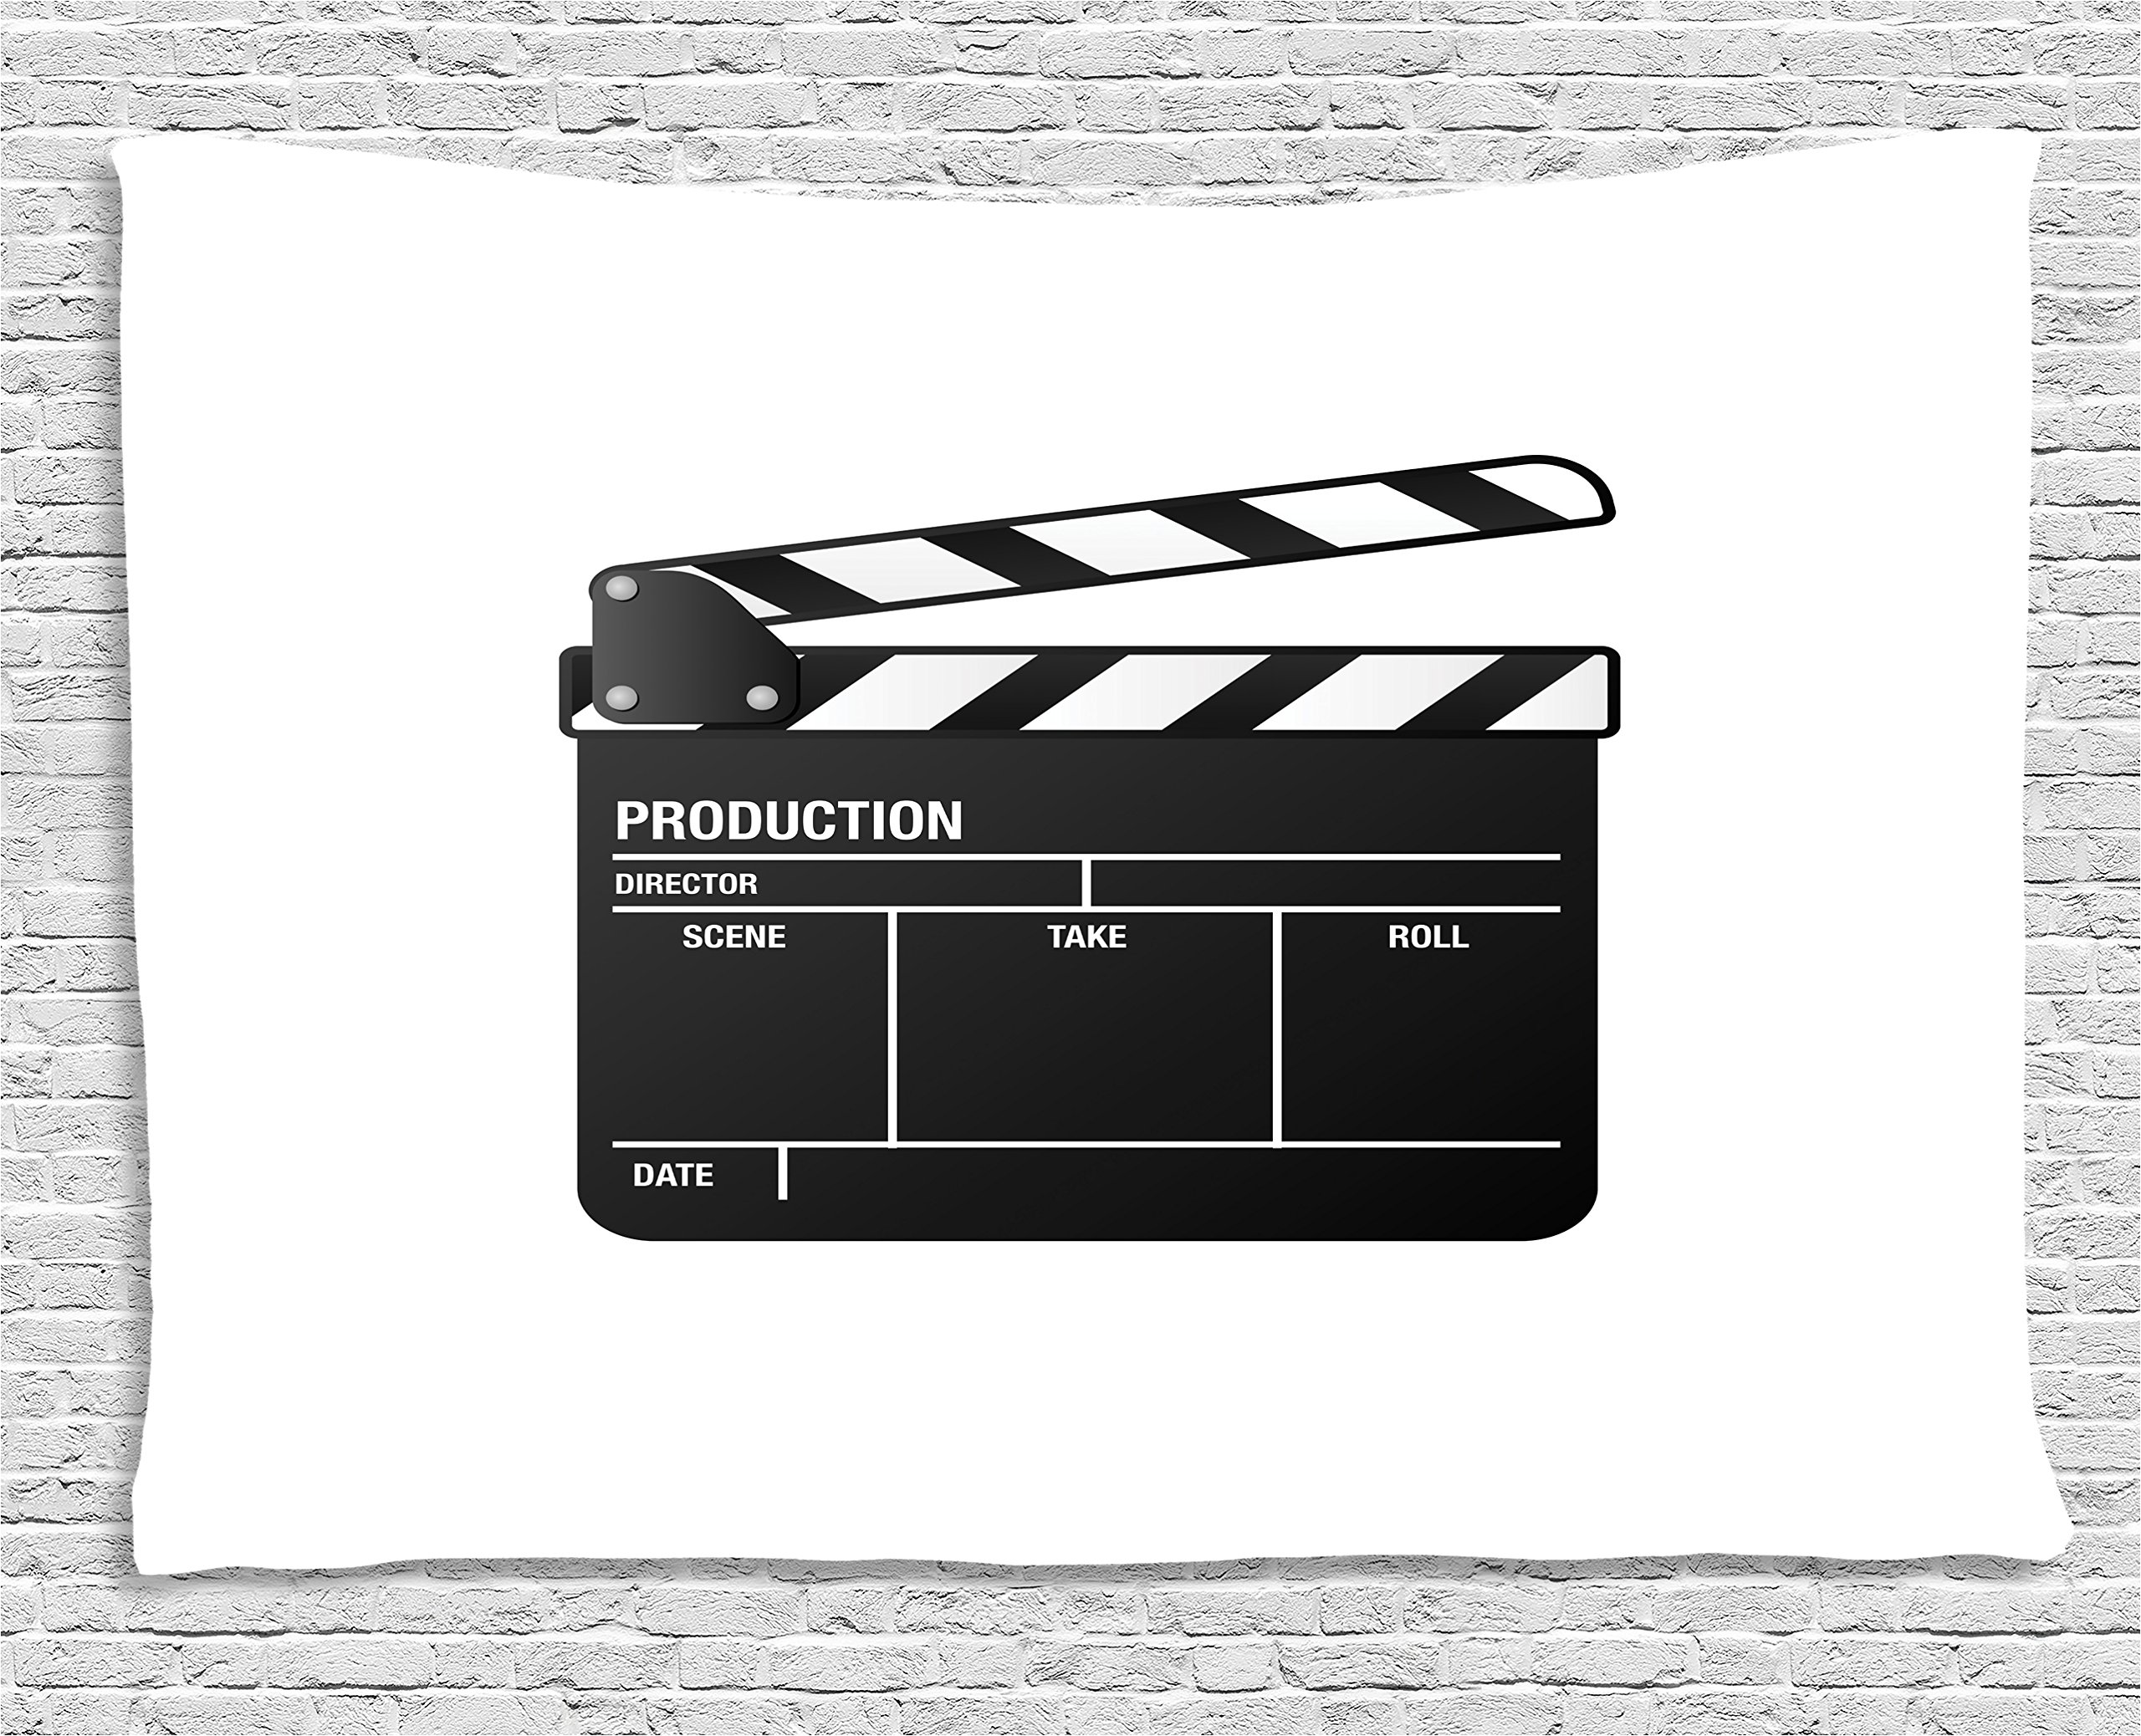 Ambesonne Movie Theater Tapestry, Realistic Illustration of a Clapper Board Symbol for Film and Video Industry, Wall Hanging for Bedroom Living Room Dorm, 60 W X 40 L inches, Black White